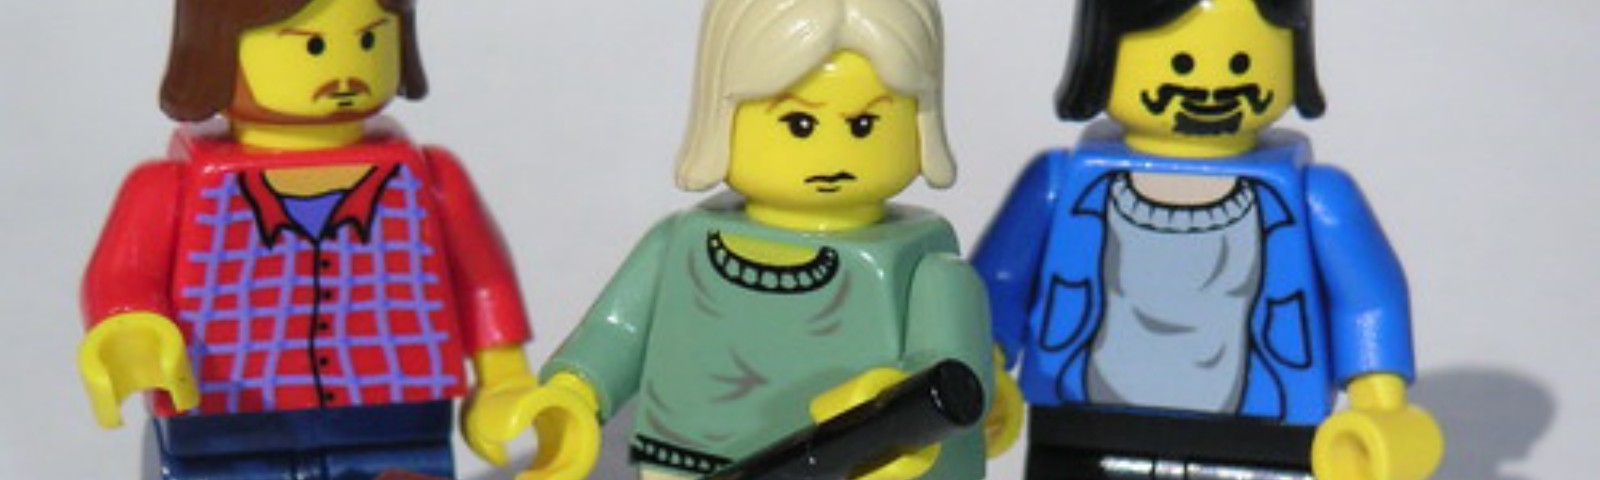 A Lego Picture of Nirvana members.